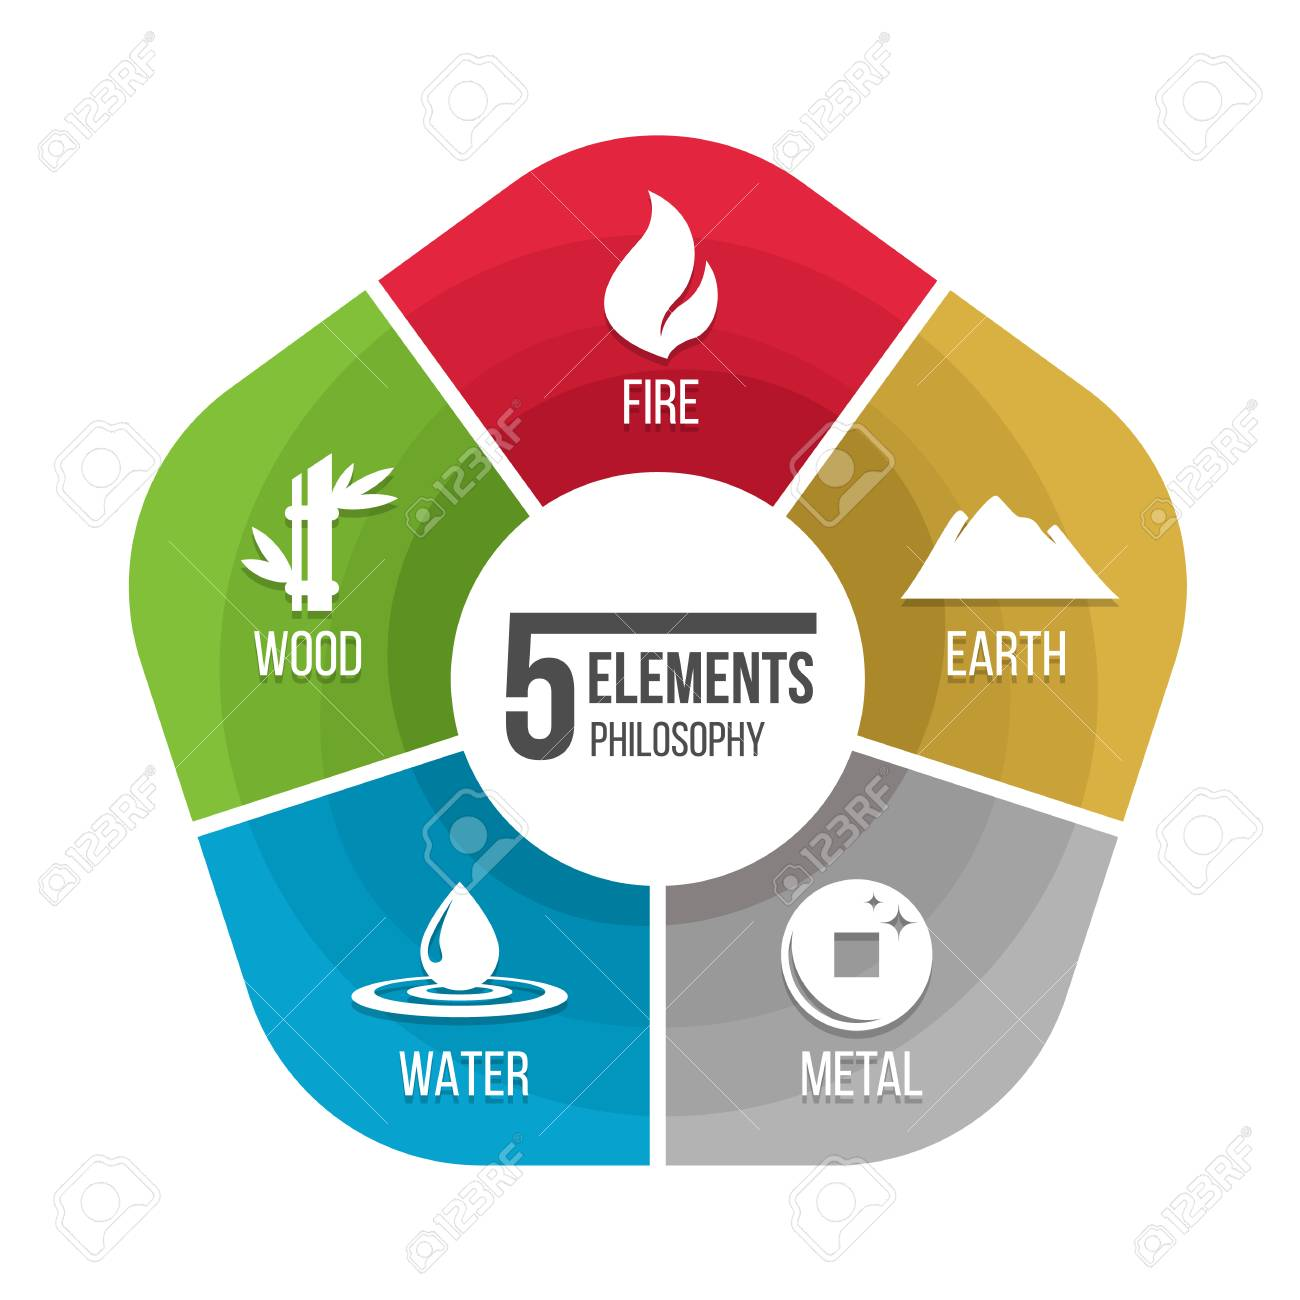 hight resolution of 5 elements philosophy icon with fire earth metal water and wood in chart diagram stock vector